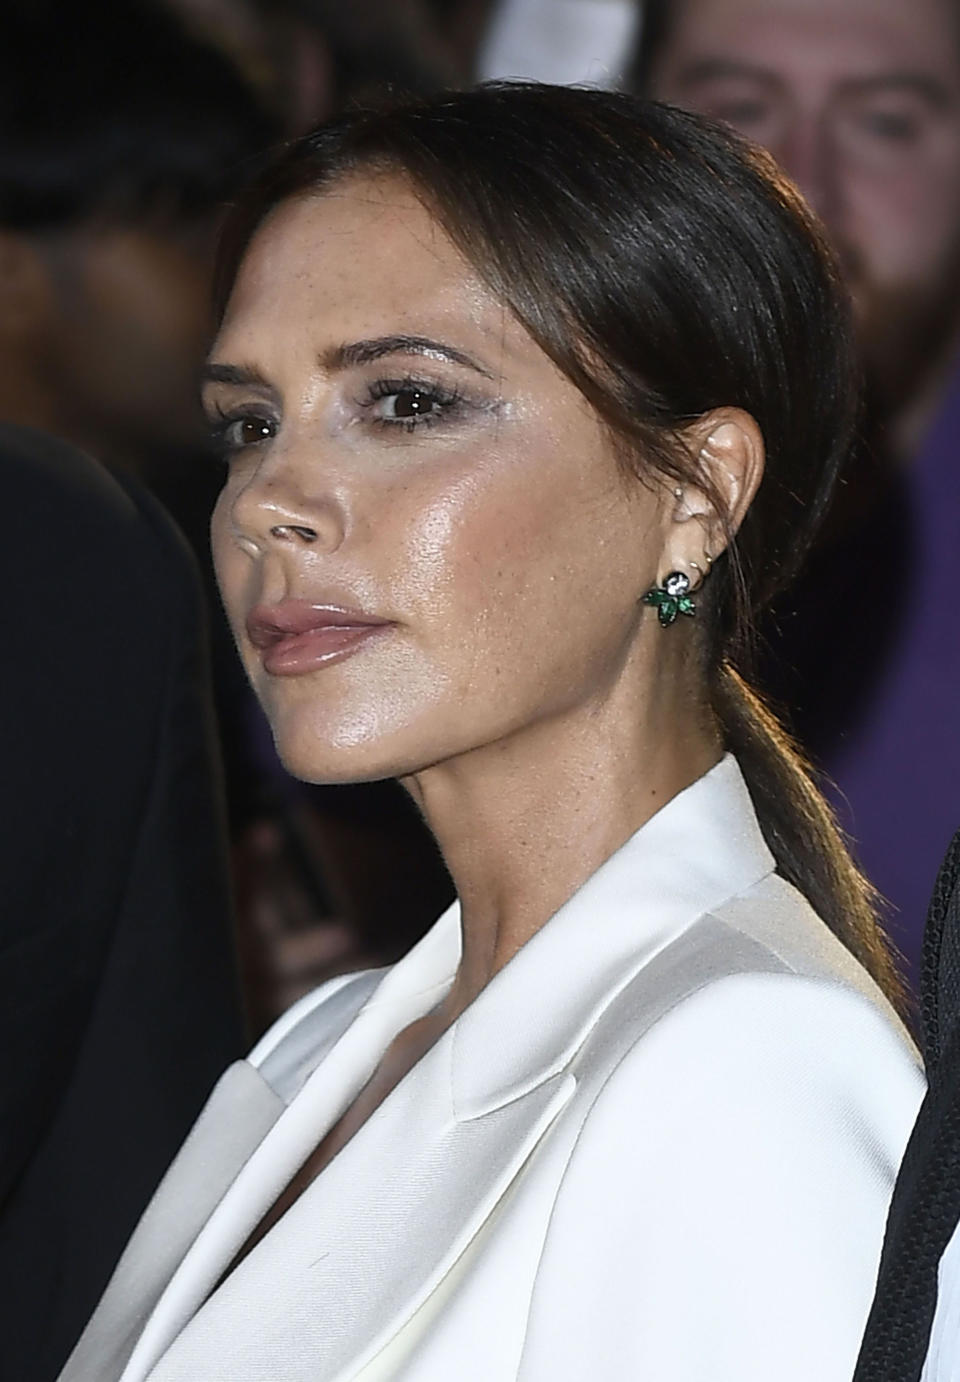 Photo by: zz/KGC-138/STAR MAX/IPx 2019 9/3/19 Victoria Beckham at the GQ Men Of The Year Awards 2019 held at Tate Modern in London, England, UK.